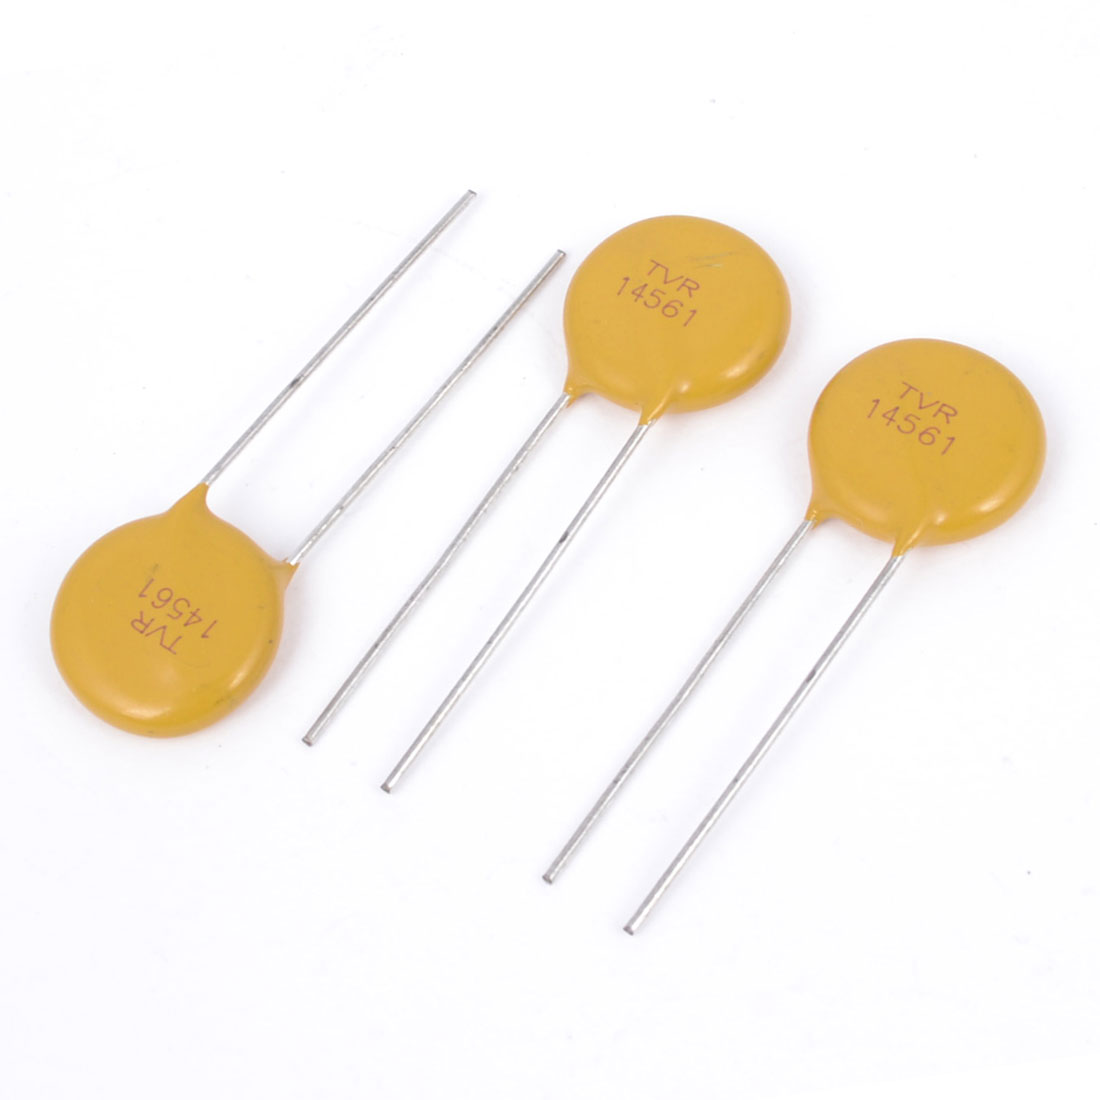 3Pcs Radial Lead Voltage Dependent Resistors Varistors 14D561K 560V